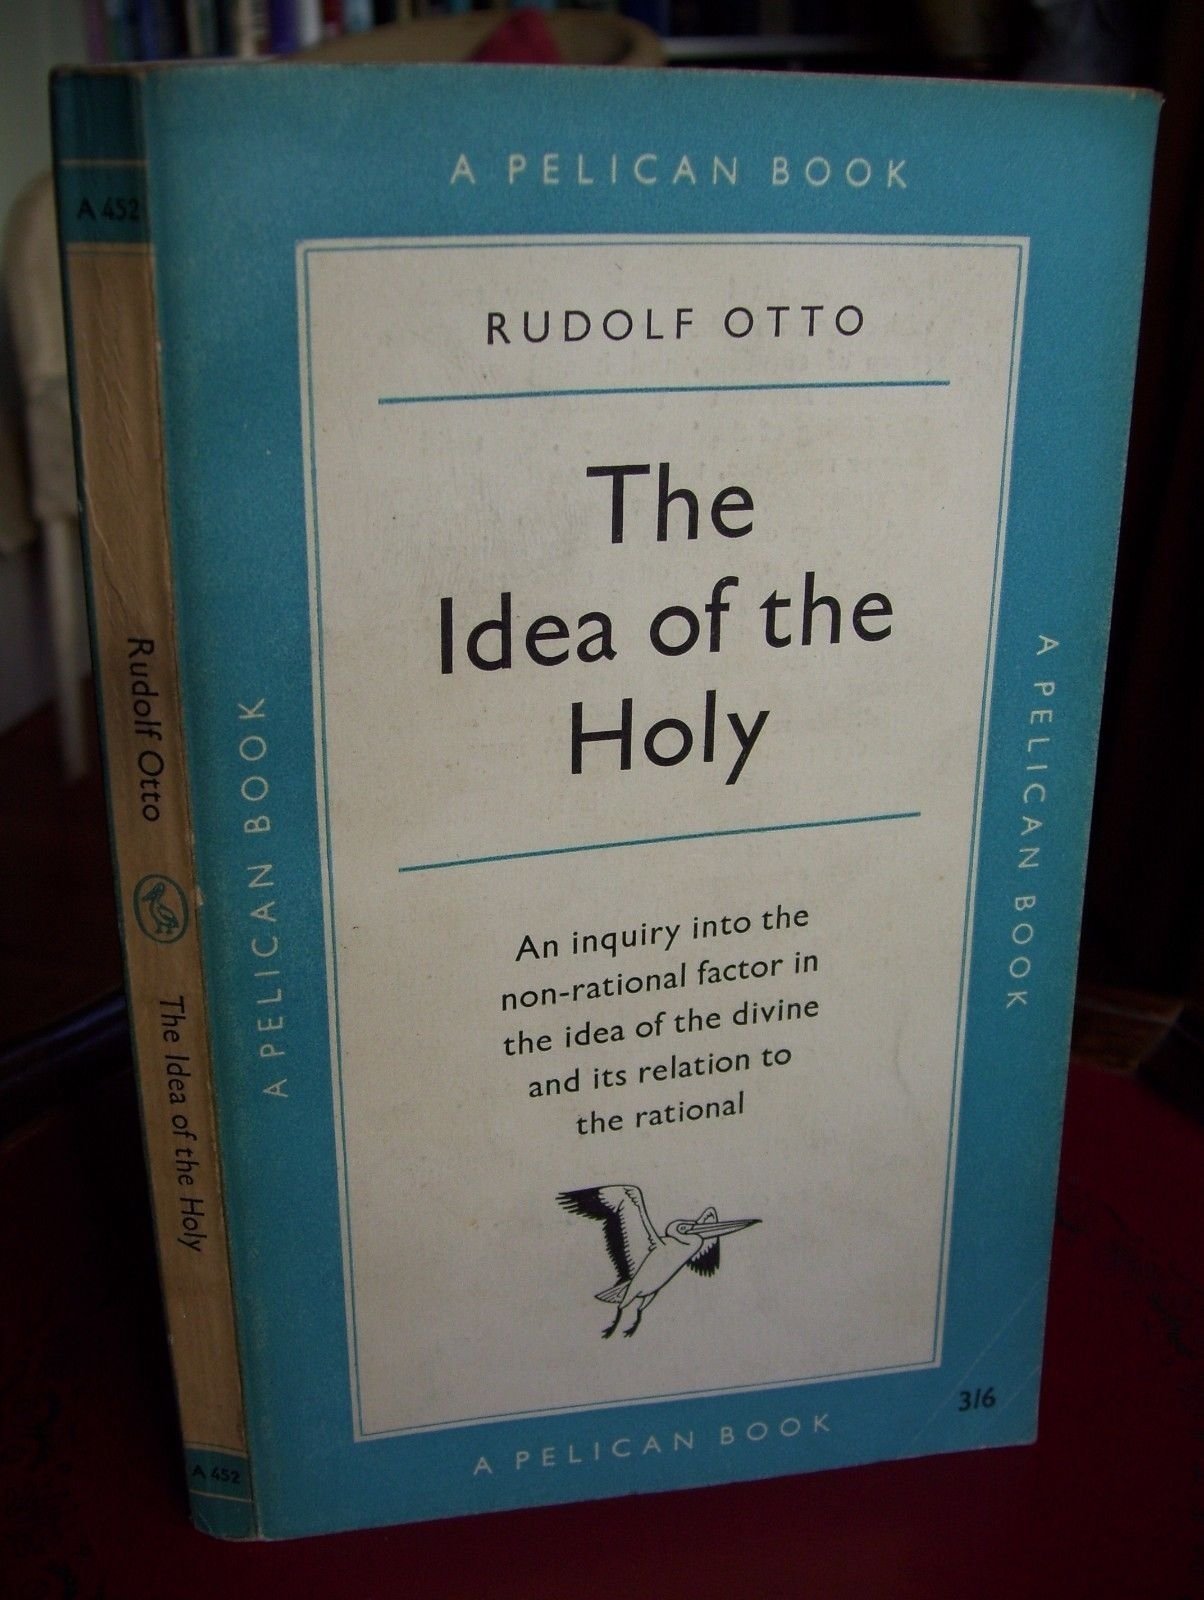 10 Pretty Rudolf Otto The Idea Of The Holy the idea of the holyrudolf otto pb 1959 142591574630 2020